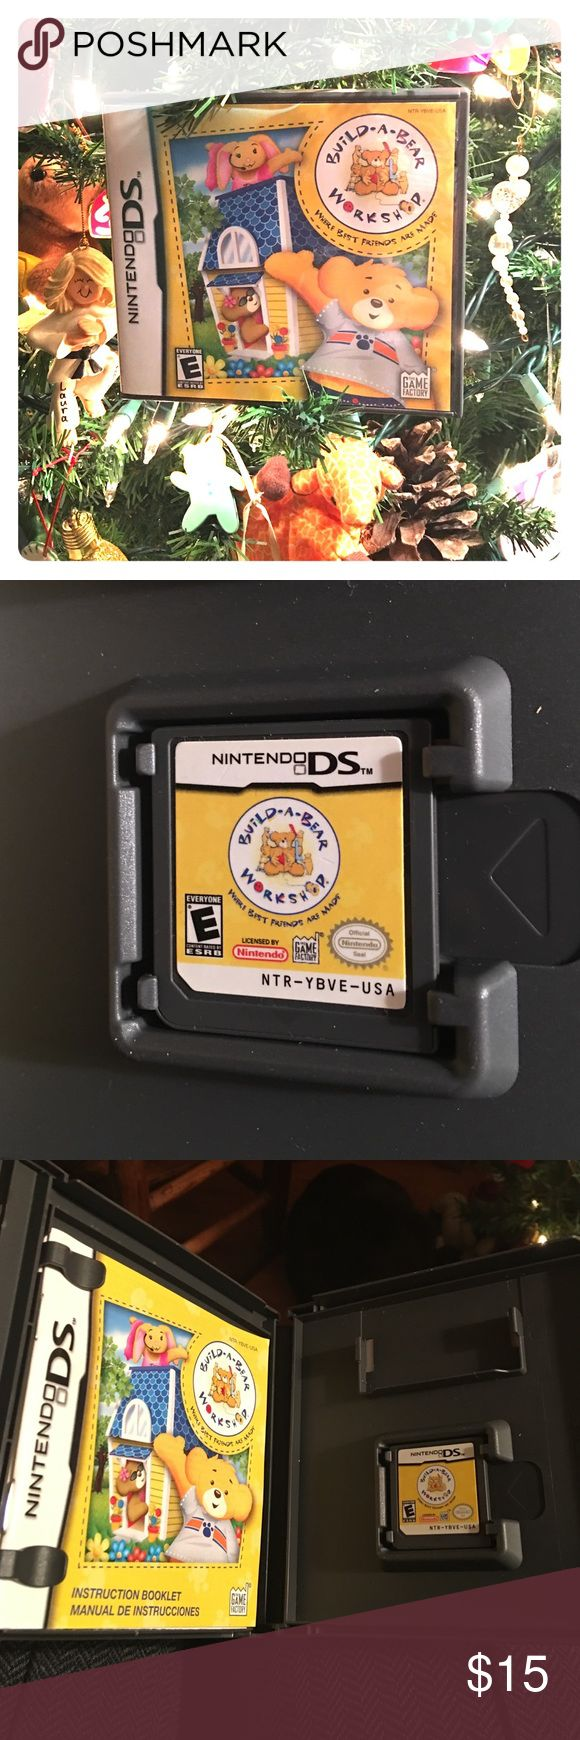 Games workshop colorado - Nintendo Ds Game Build A Bear Workshop Used In Excellent Working Condition Case